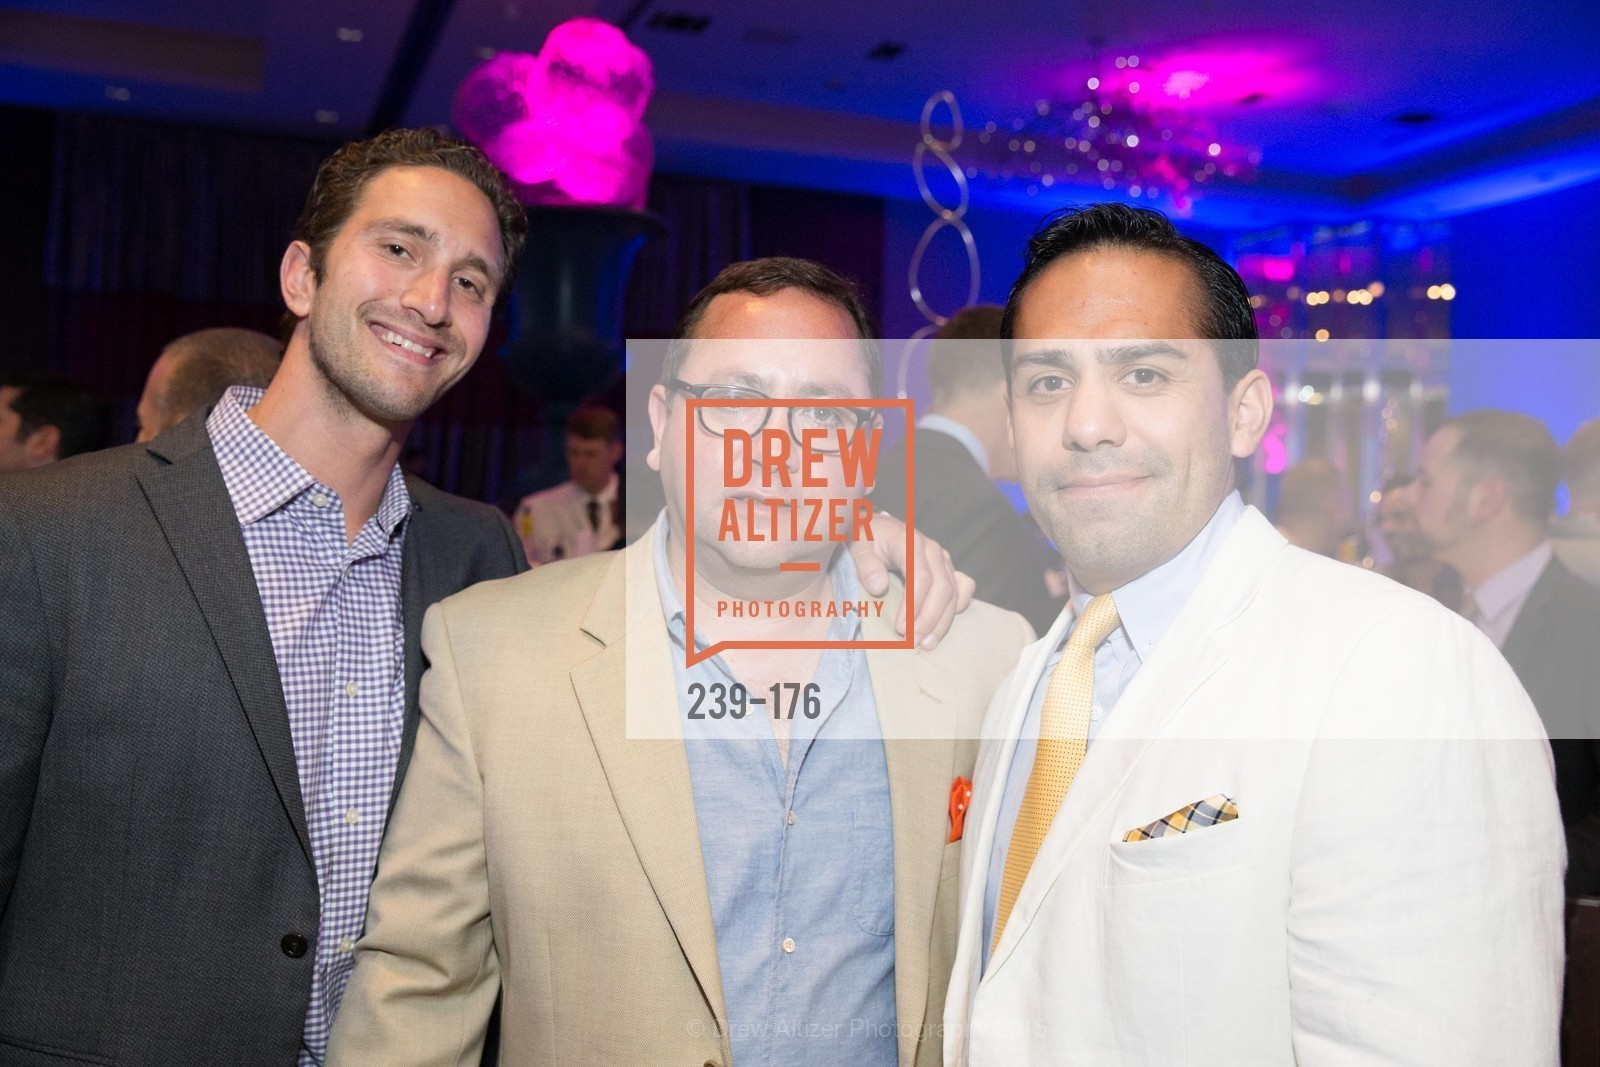 Craig Ramszel, Oscar Escobar, Matias Acosta, VIP Pride Celebration 2015, St. Regis, June 18th, 2015,Drew Altizer, Drew Altizer Photography, full-service agency, private events, San Francisco photographer, photographer california